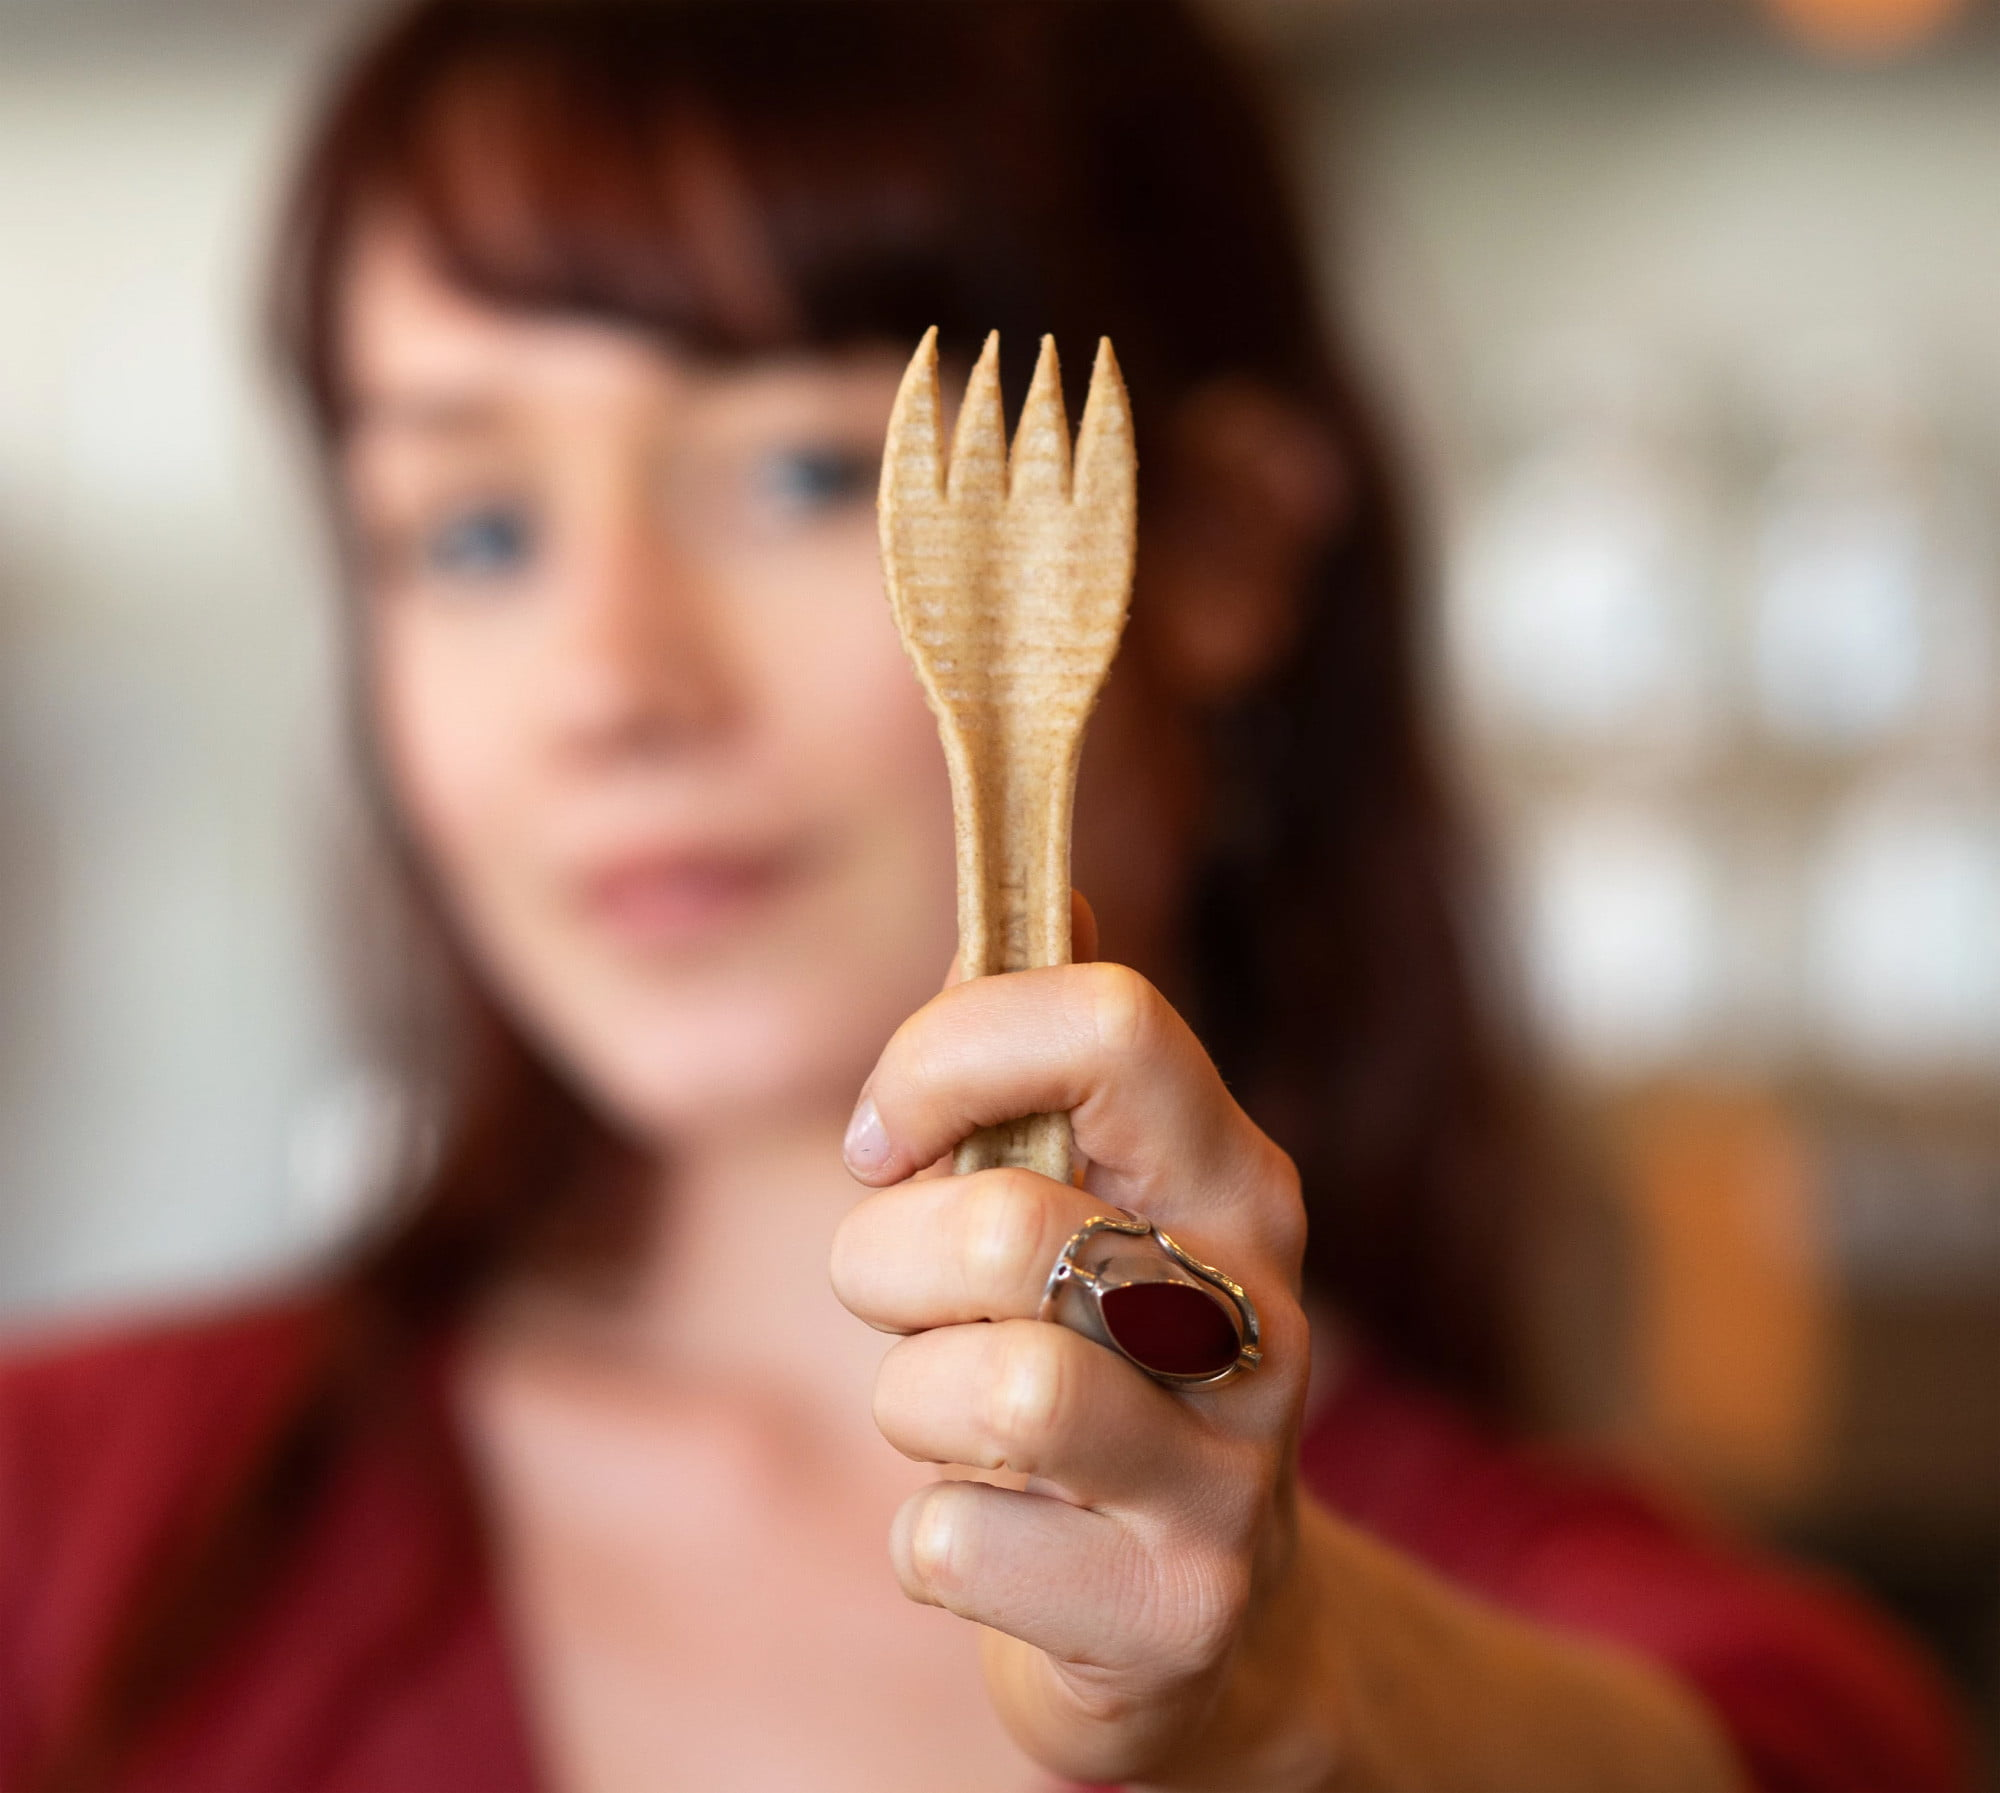 Compostable cutlery could help solve the world's waste plastic crisis